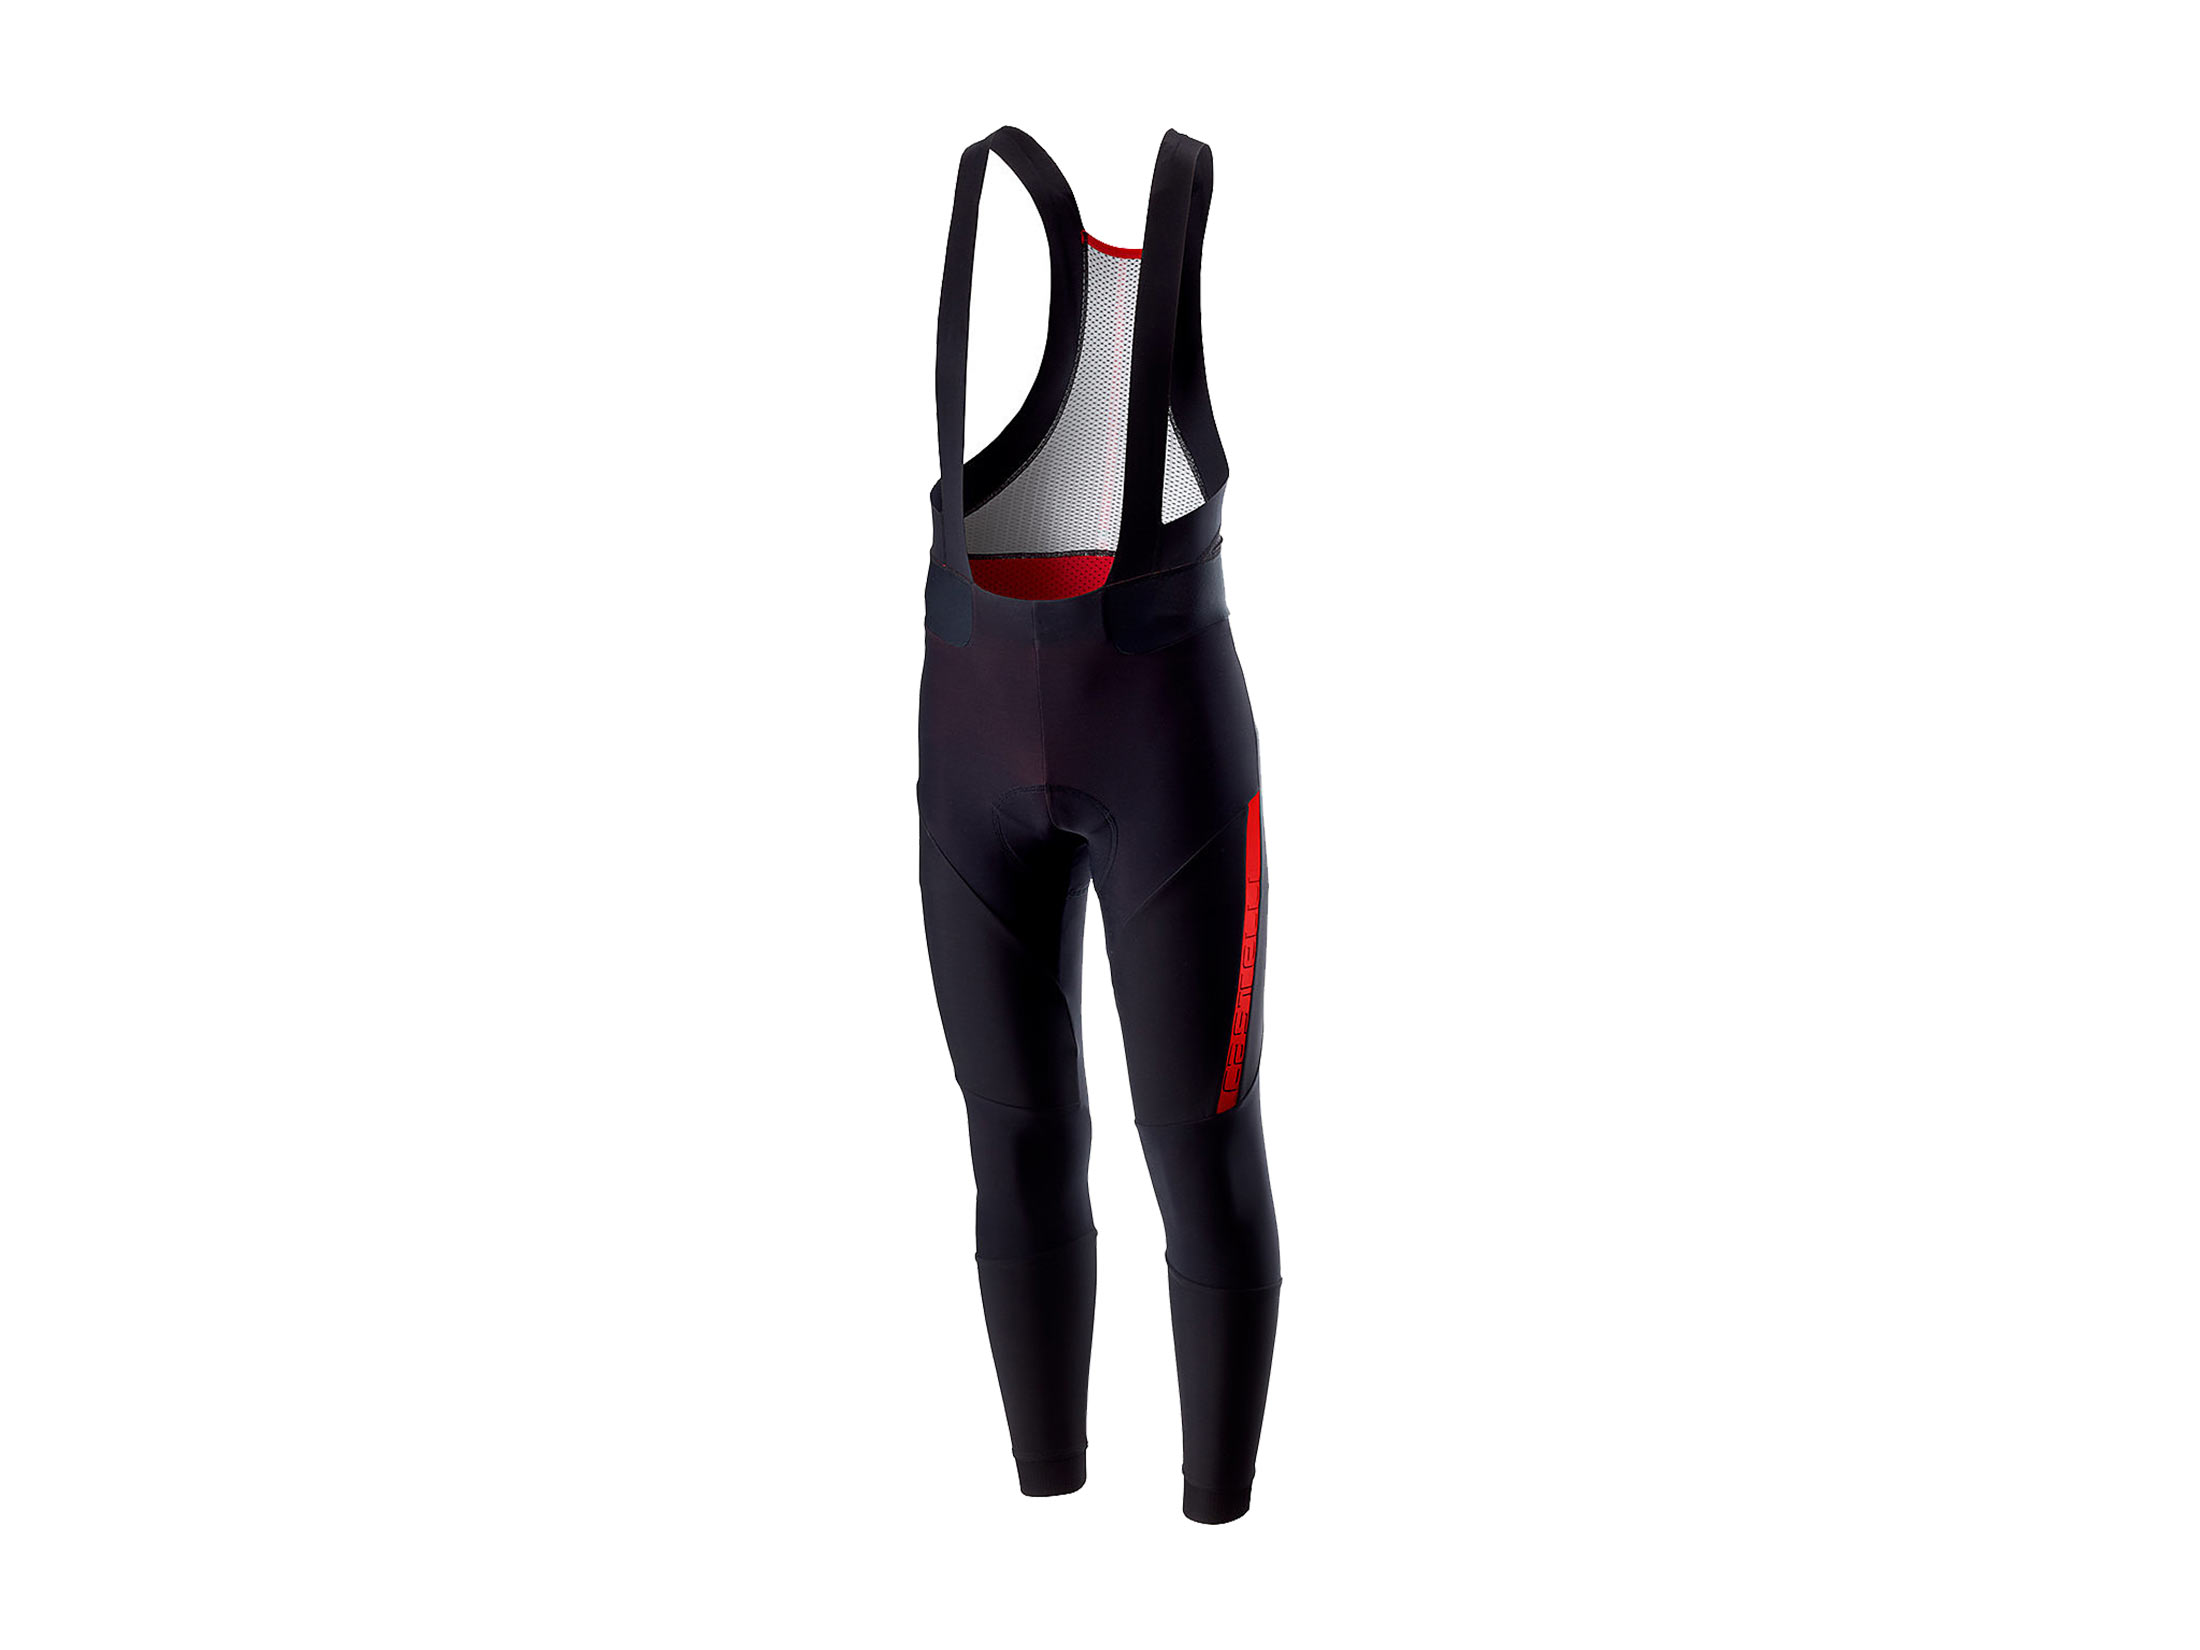 Castelli Sorpasso 2 Bibtight - Μαύρο/Κόκκινο